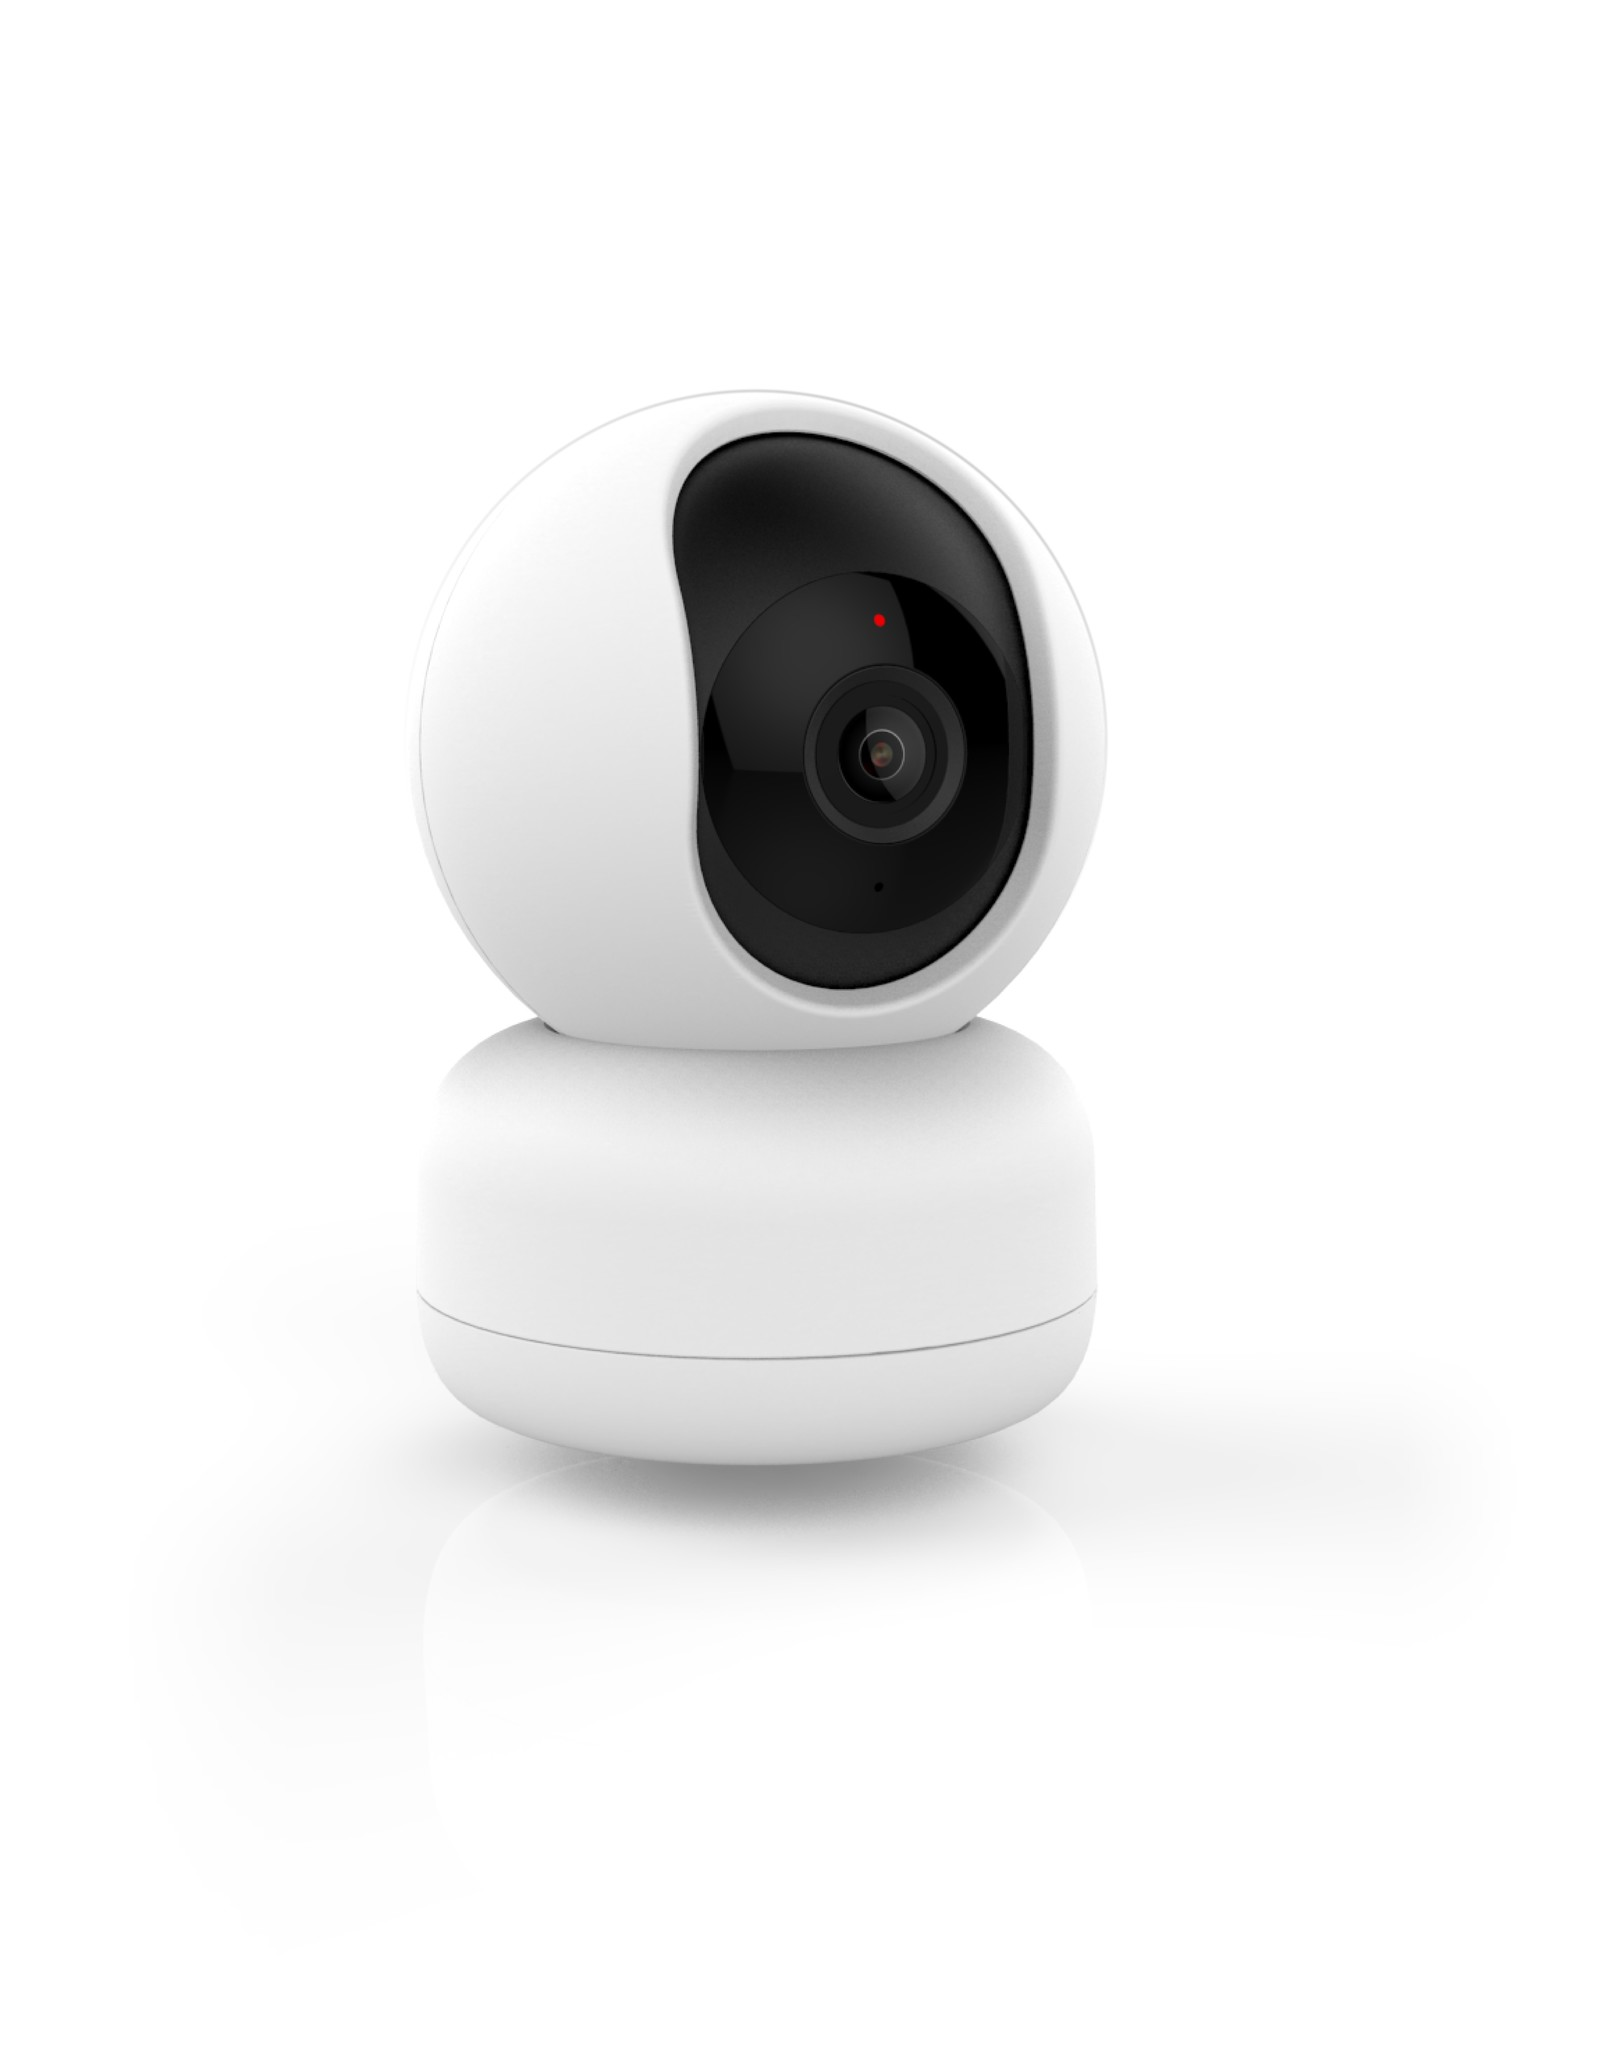 Woox Home Woox Smart Indoor PTZ WiFi Camera